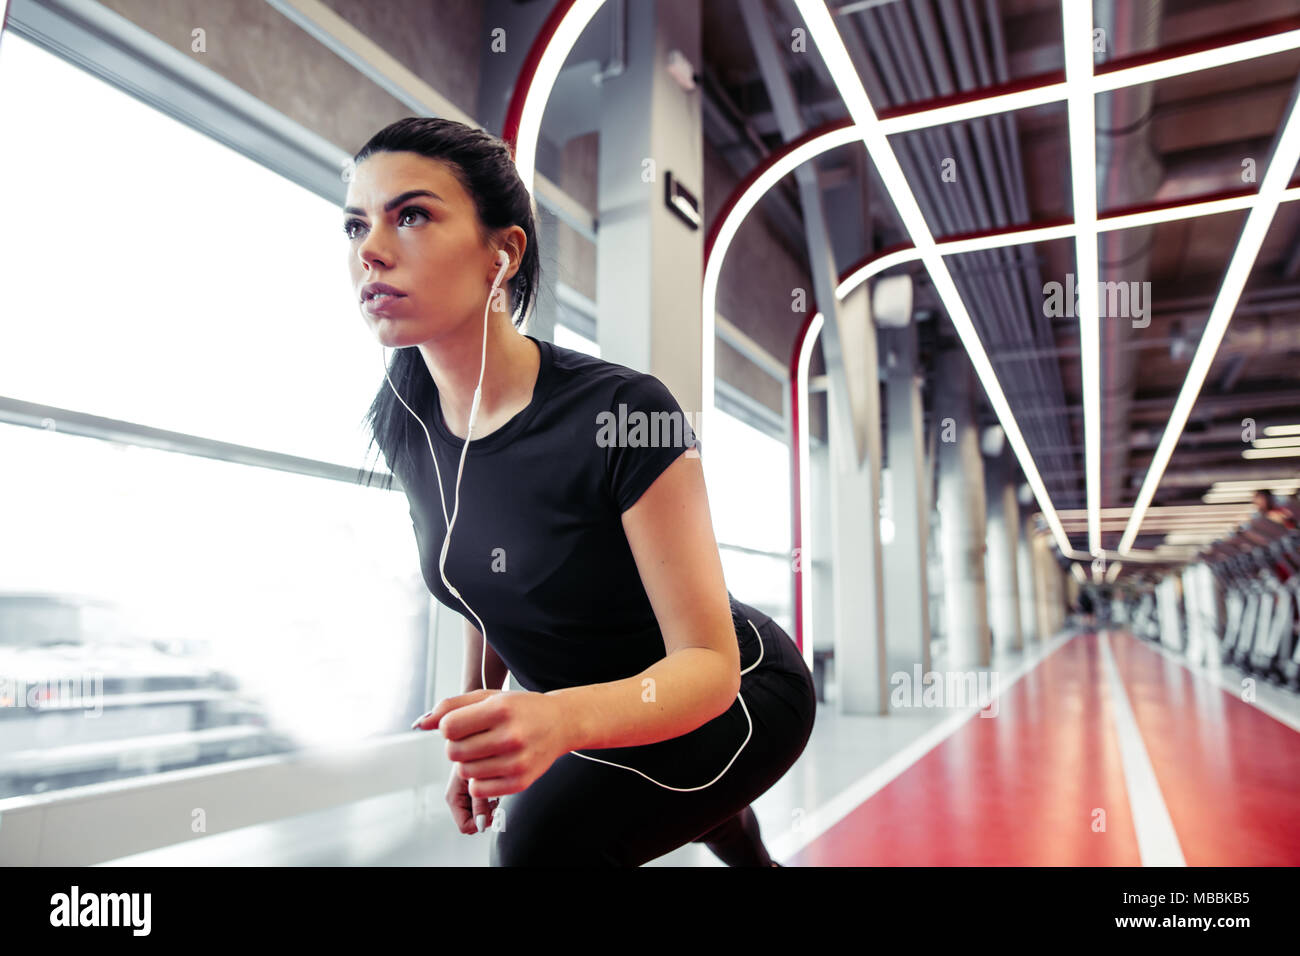 Female athlete in position ready to run. woman ready for sprint. Stock Photo